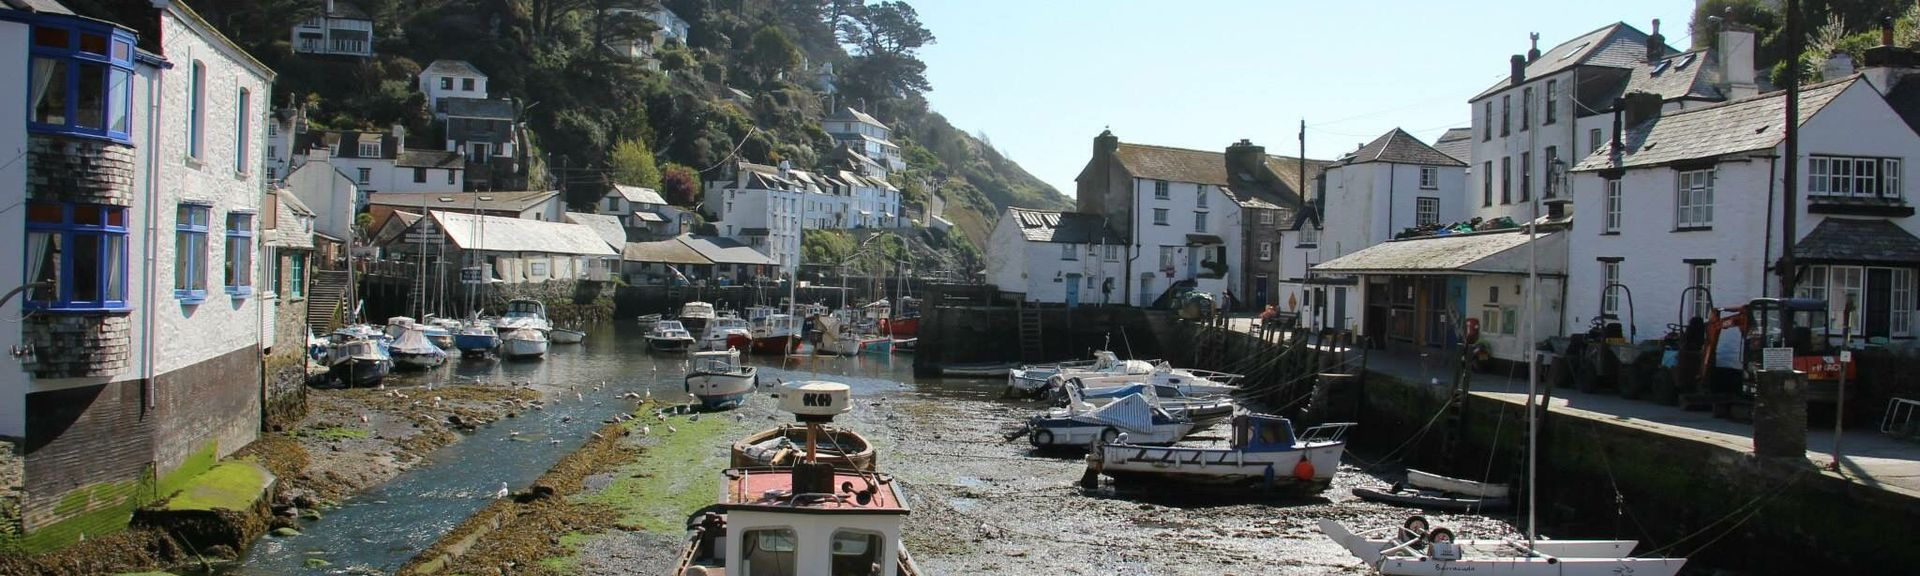 Polperro, Cornwall, UK